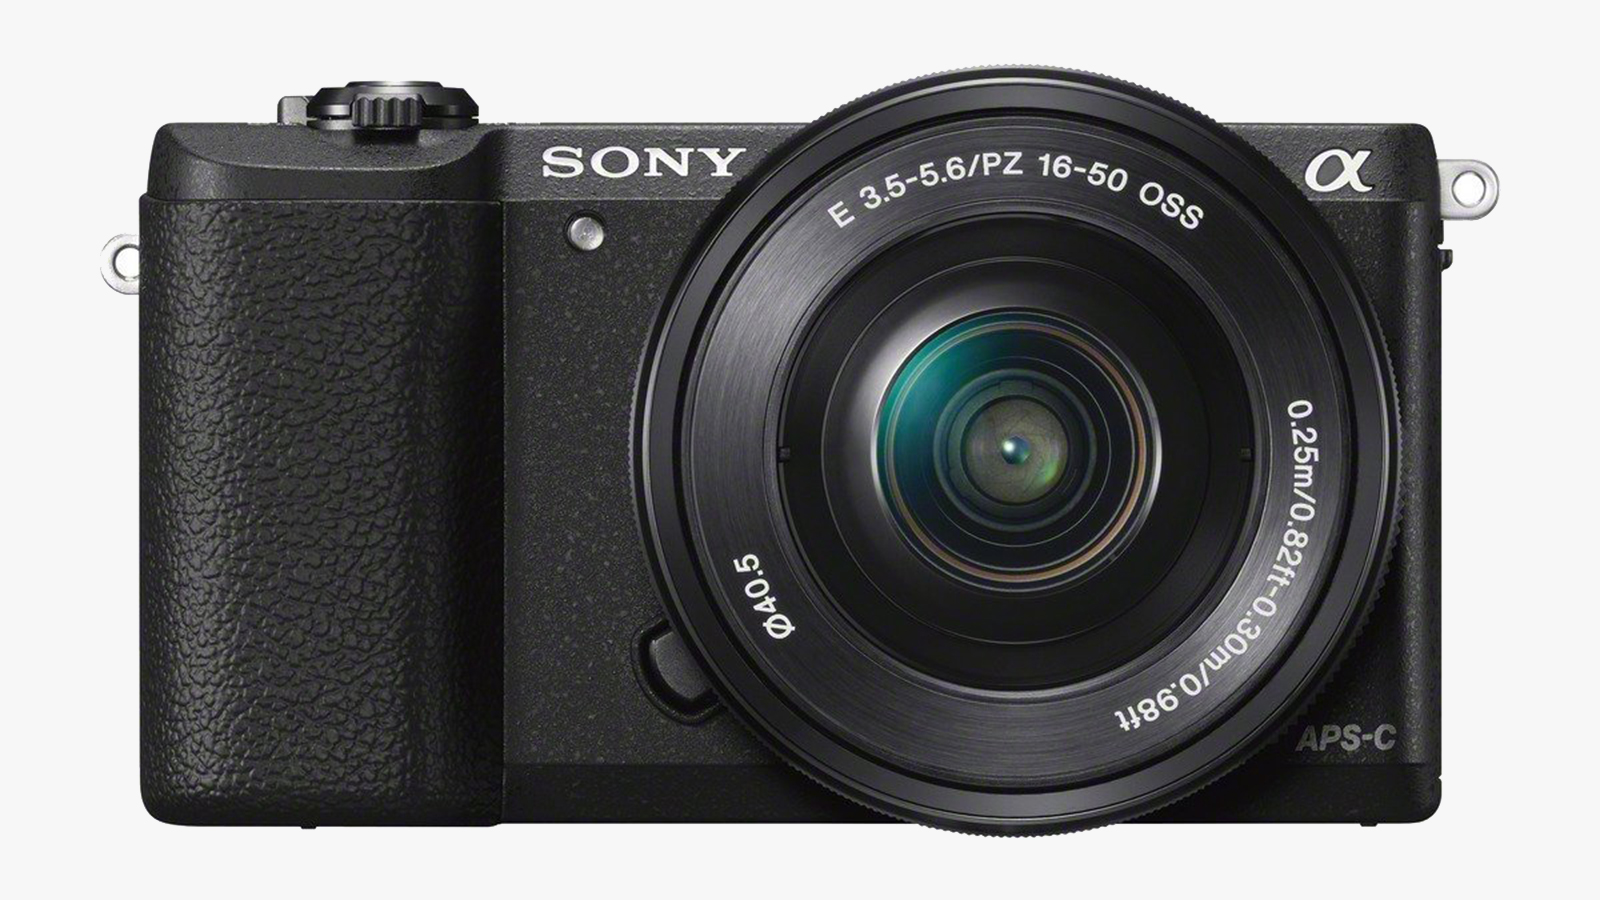 Sony a5100 Mirrorless Digital Camera